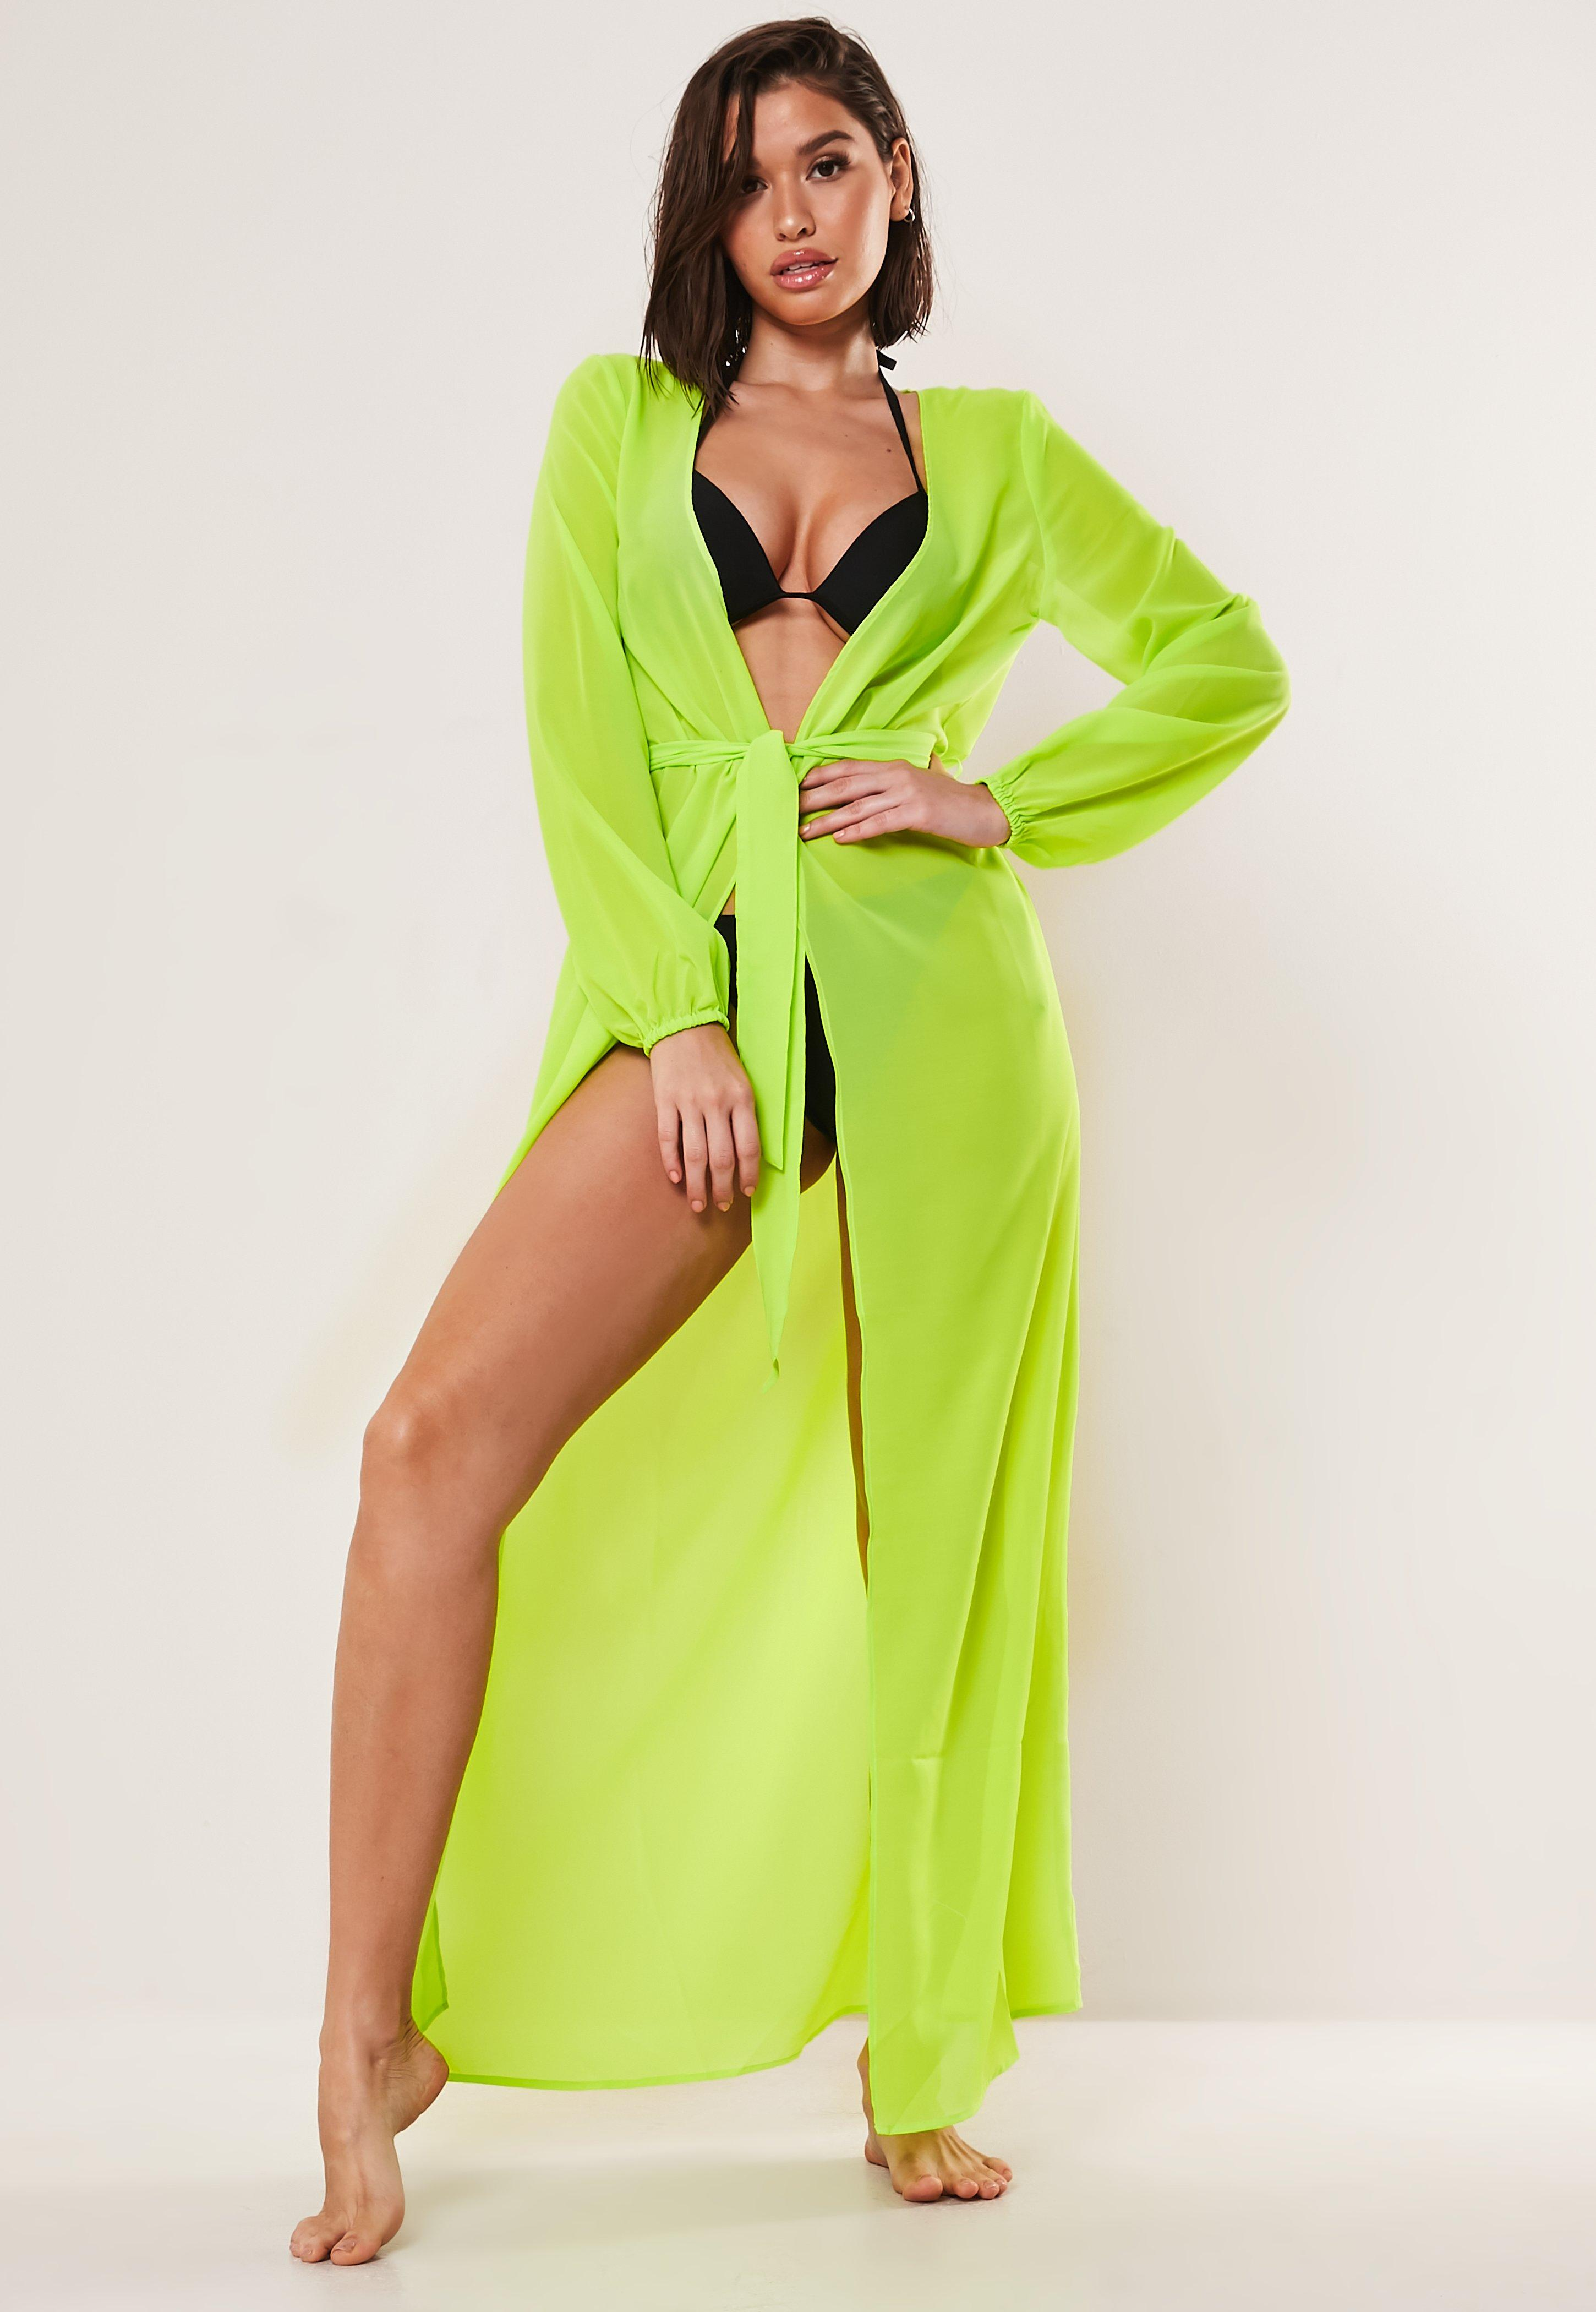 Neon Chiffon Tie Waist Beach Cover Up Kimono by Missguided